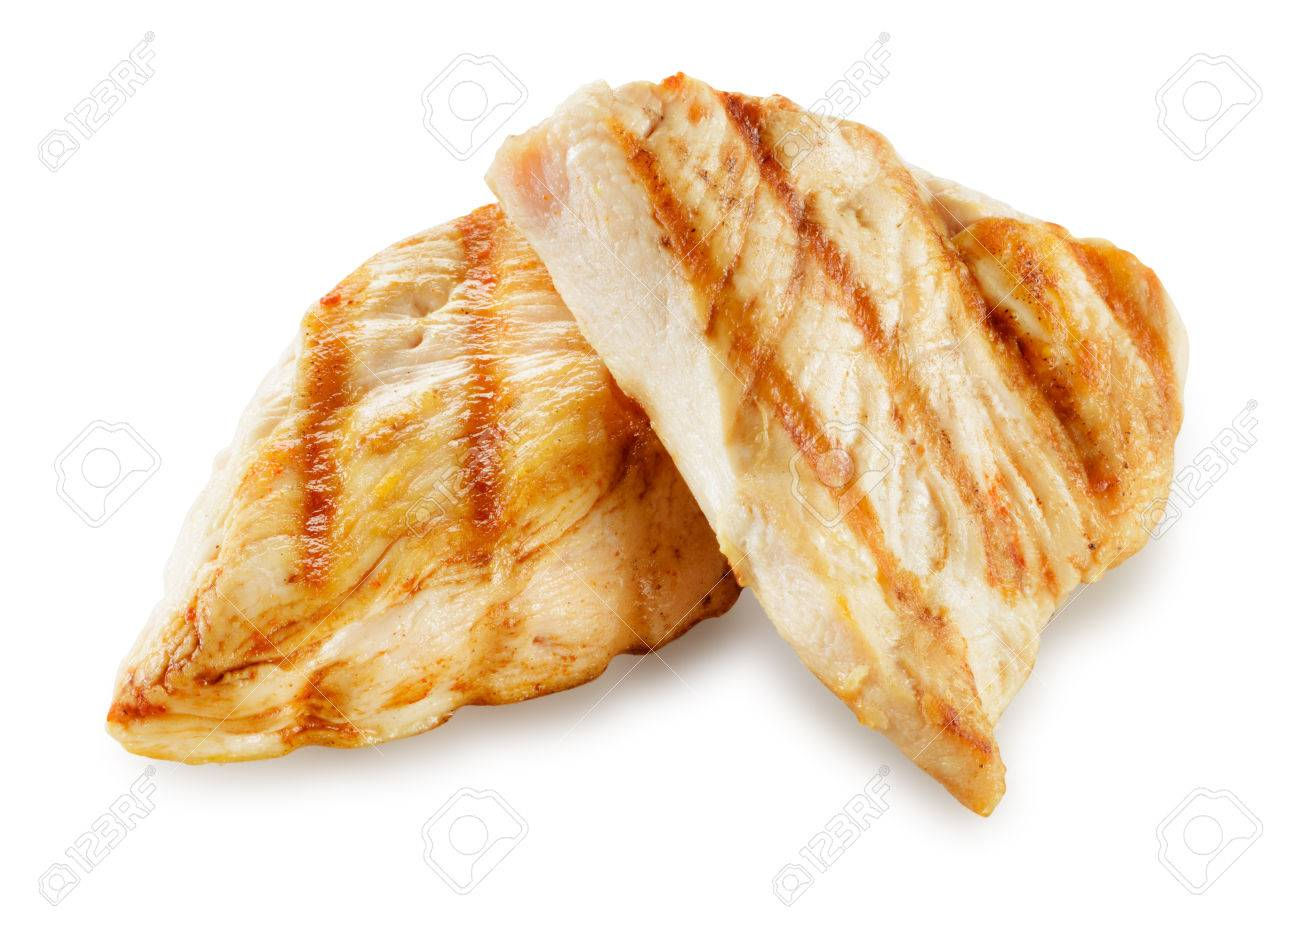 Prepared chicken meat. Breast fillet slices isolated. With clipping path. - 53405201